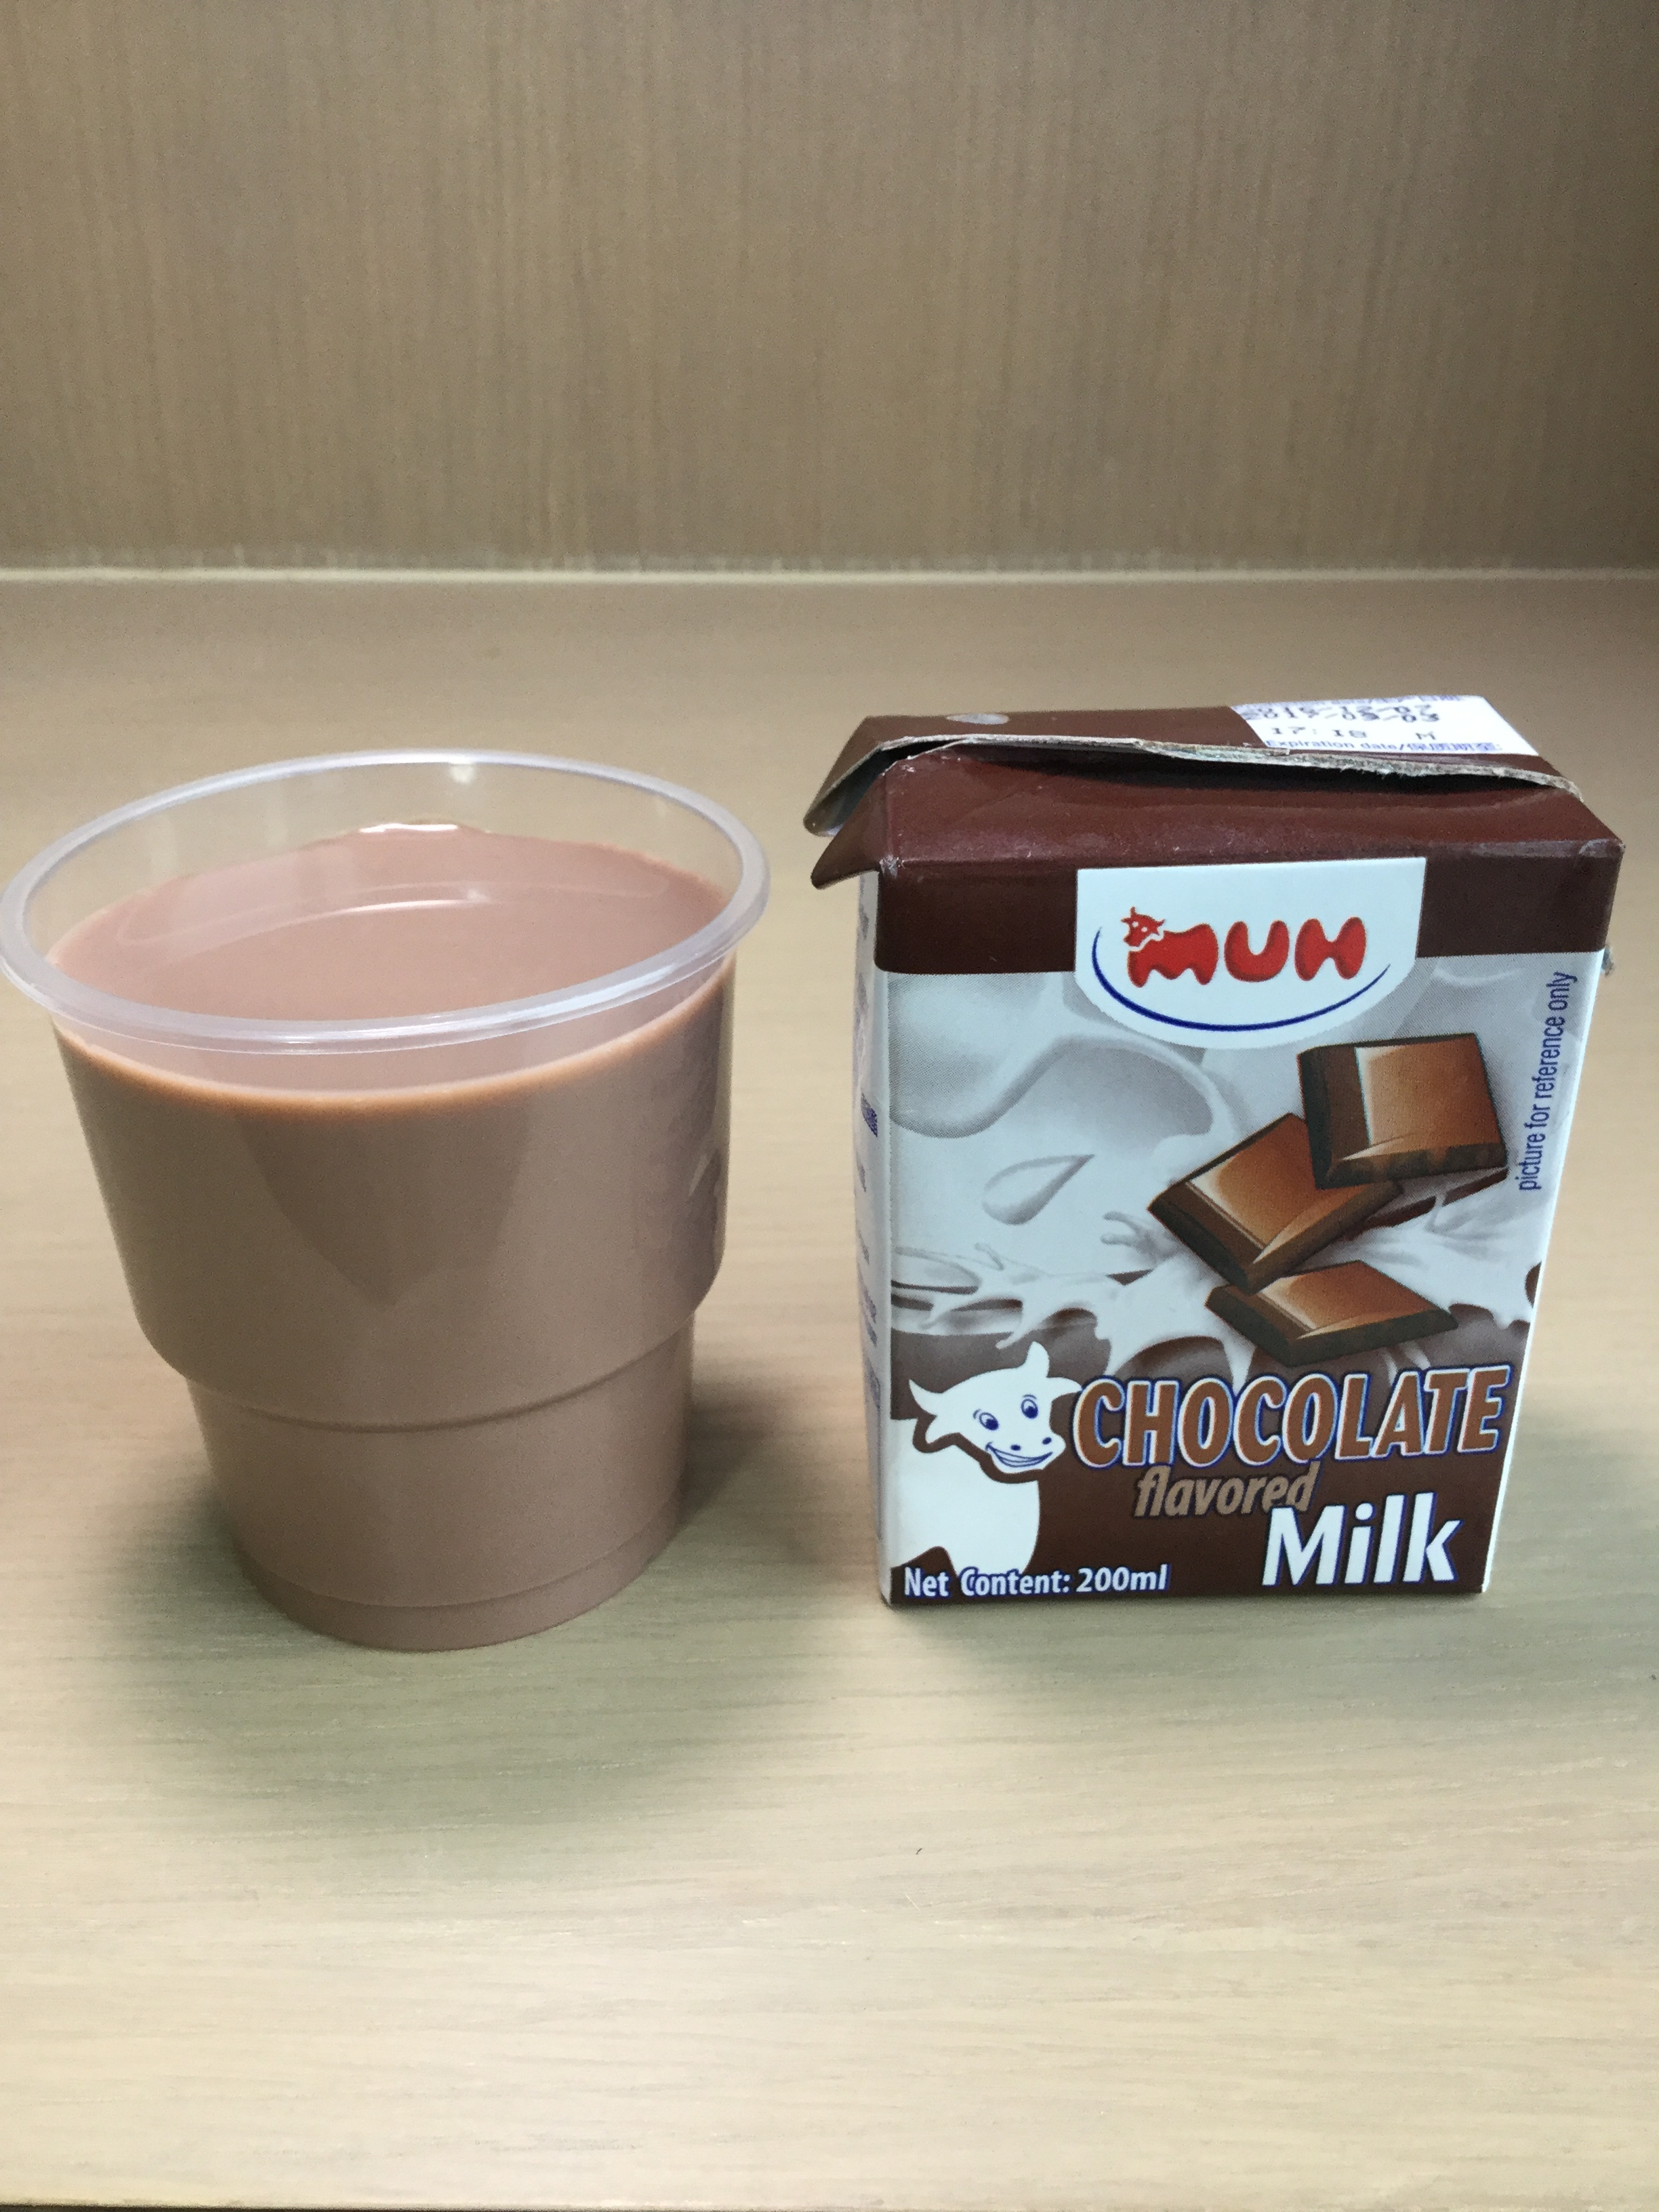 Muh Chocolate Flavored Milk Cup